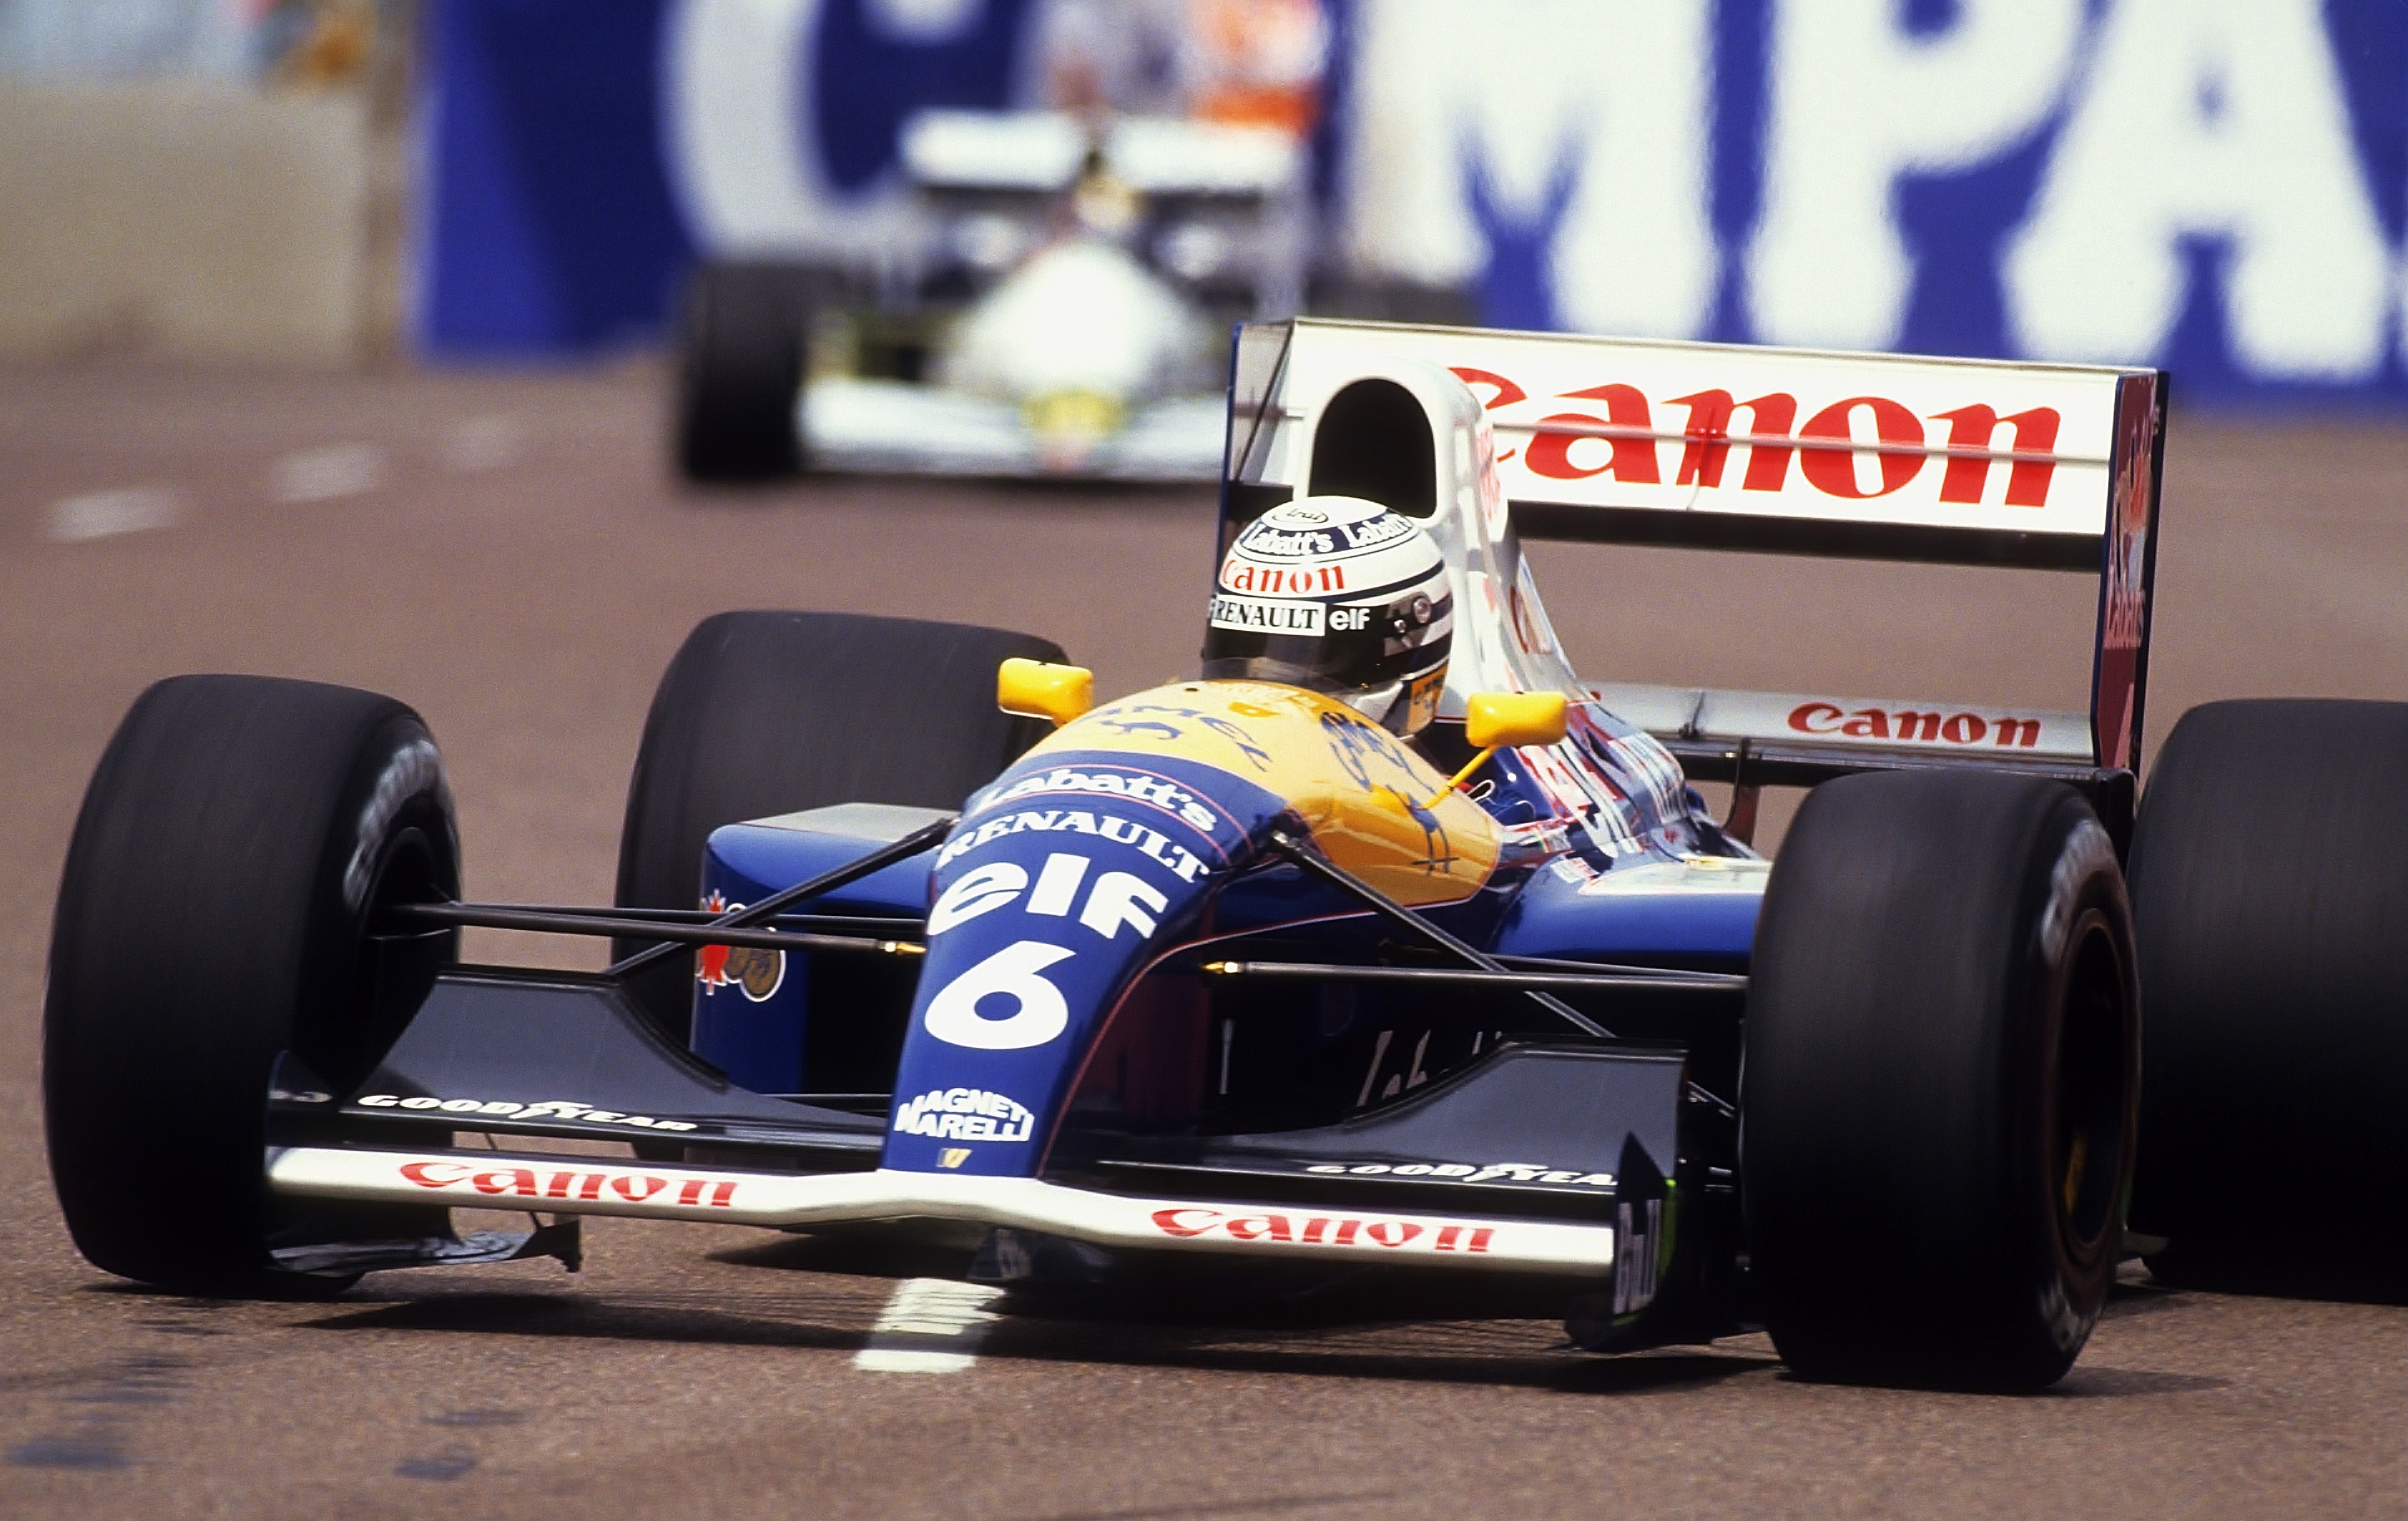 United States Grand Prix >> File:Riccardo Patrese 1991 United States.jpg - Wikimedia Commons